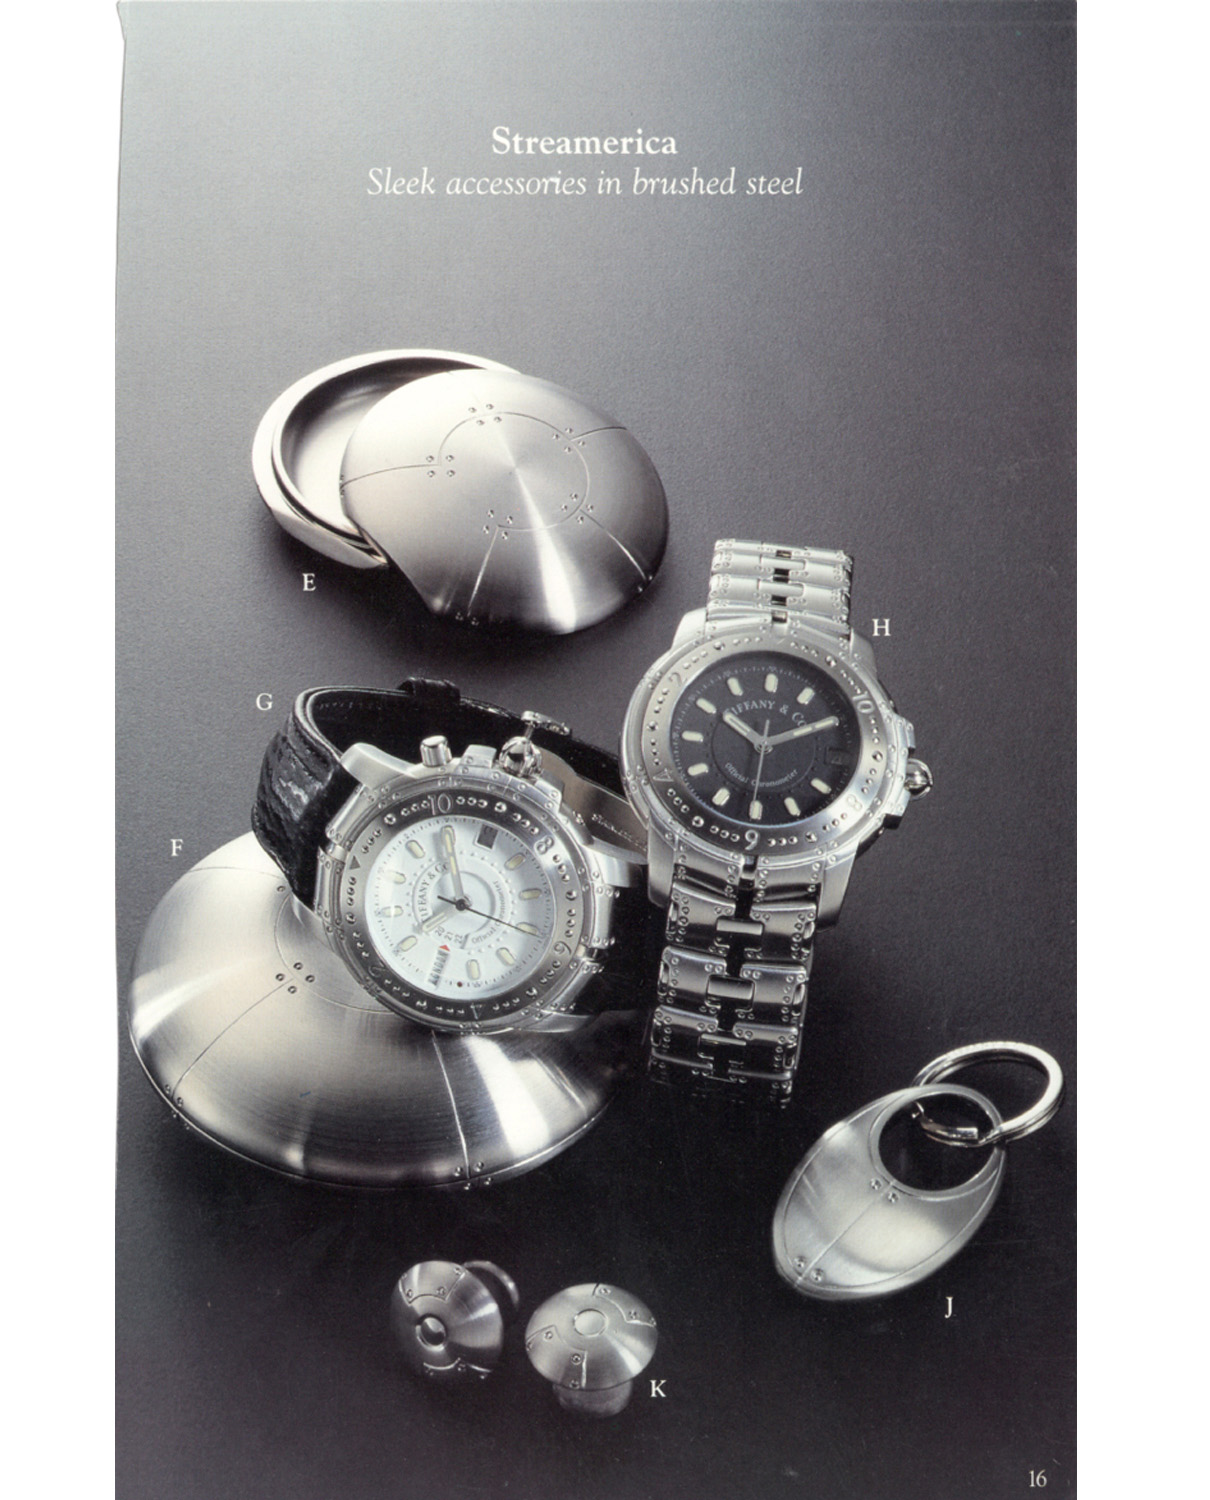 Tiffany & Co. Blue Book Catalog from the late 90's Perisphere Nesting Boxes, the World Timer Automatic Watch leather band, the Automatic Chronometer in all brushed steel band, the geodome cufflinks, and the Curviline key ring.